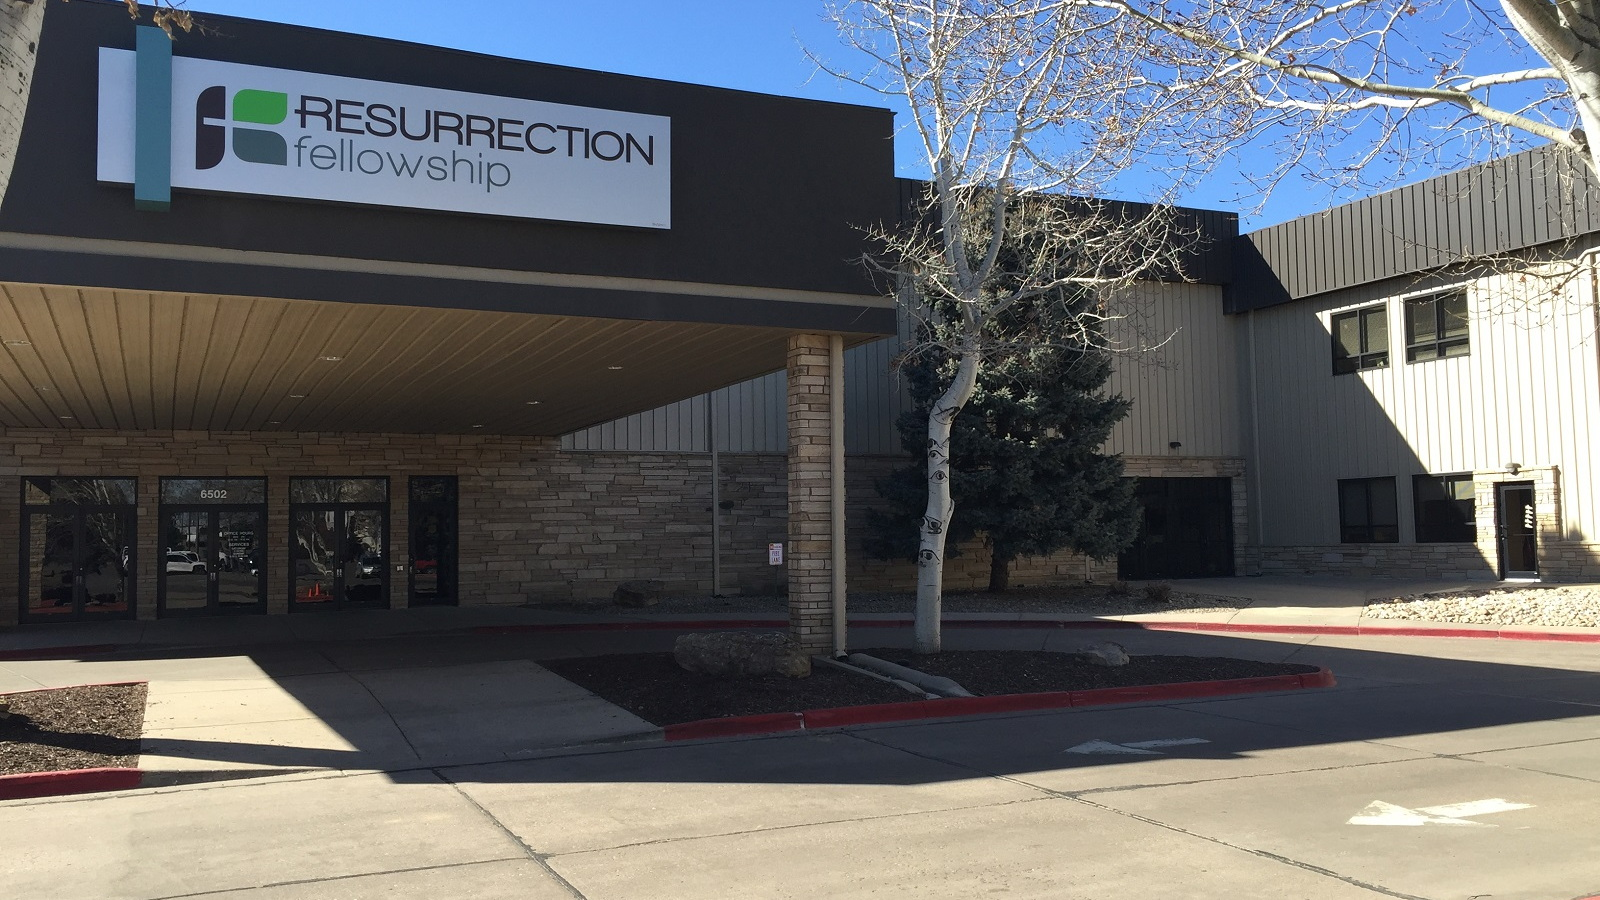 Resurrection Fellowship Church, Loveland, Colorado